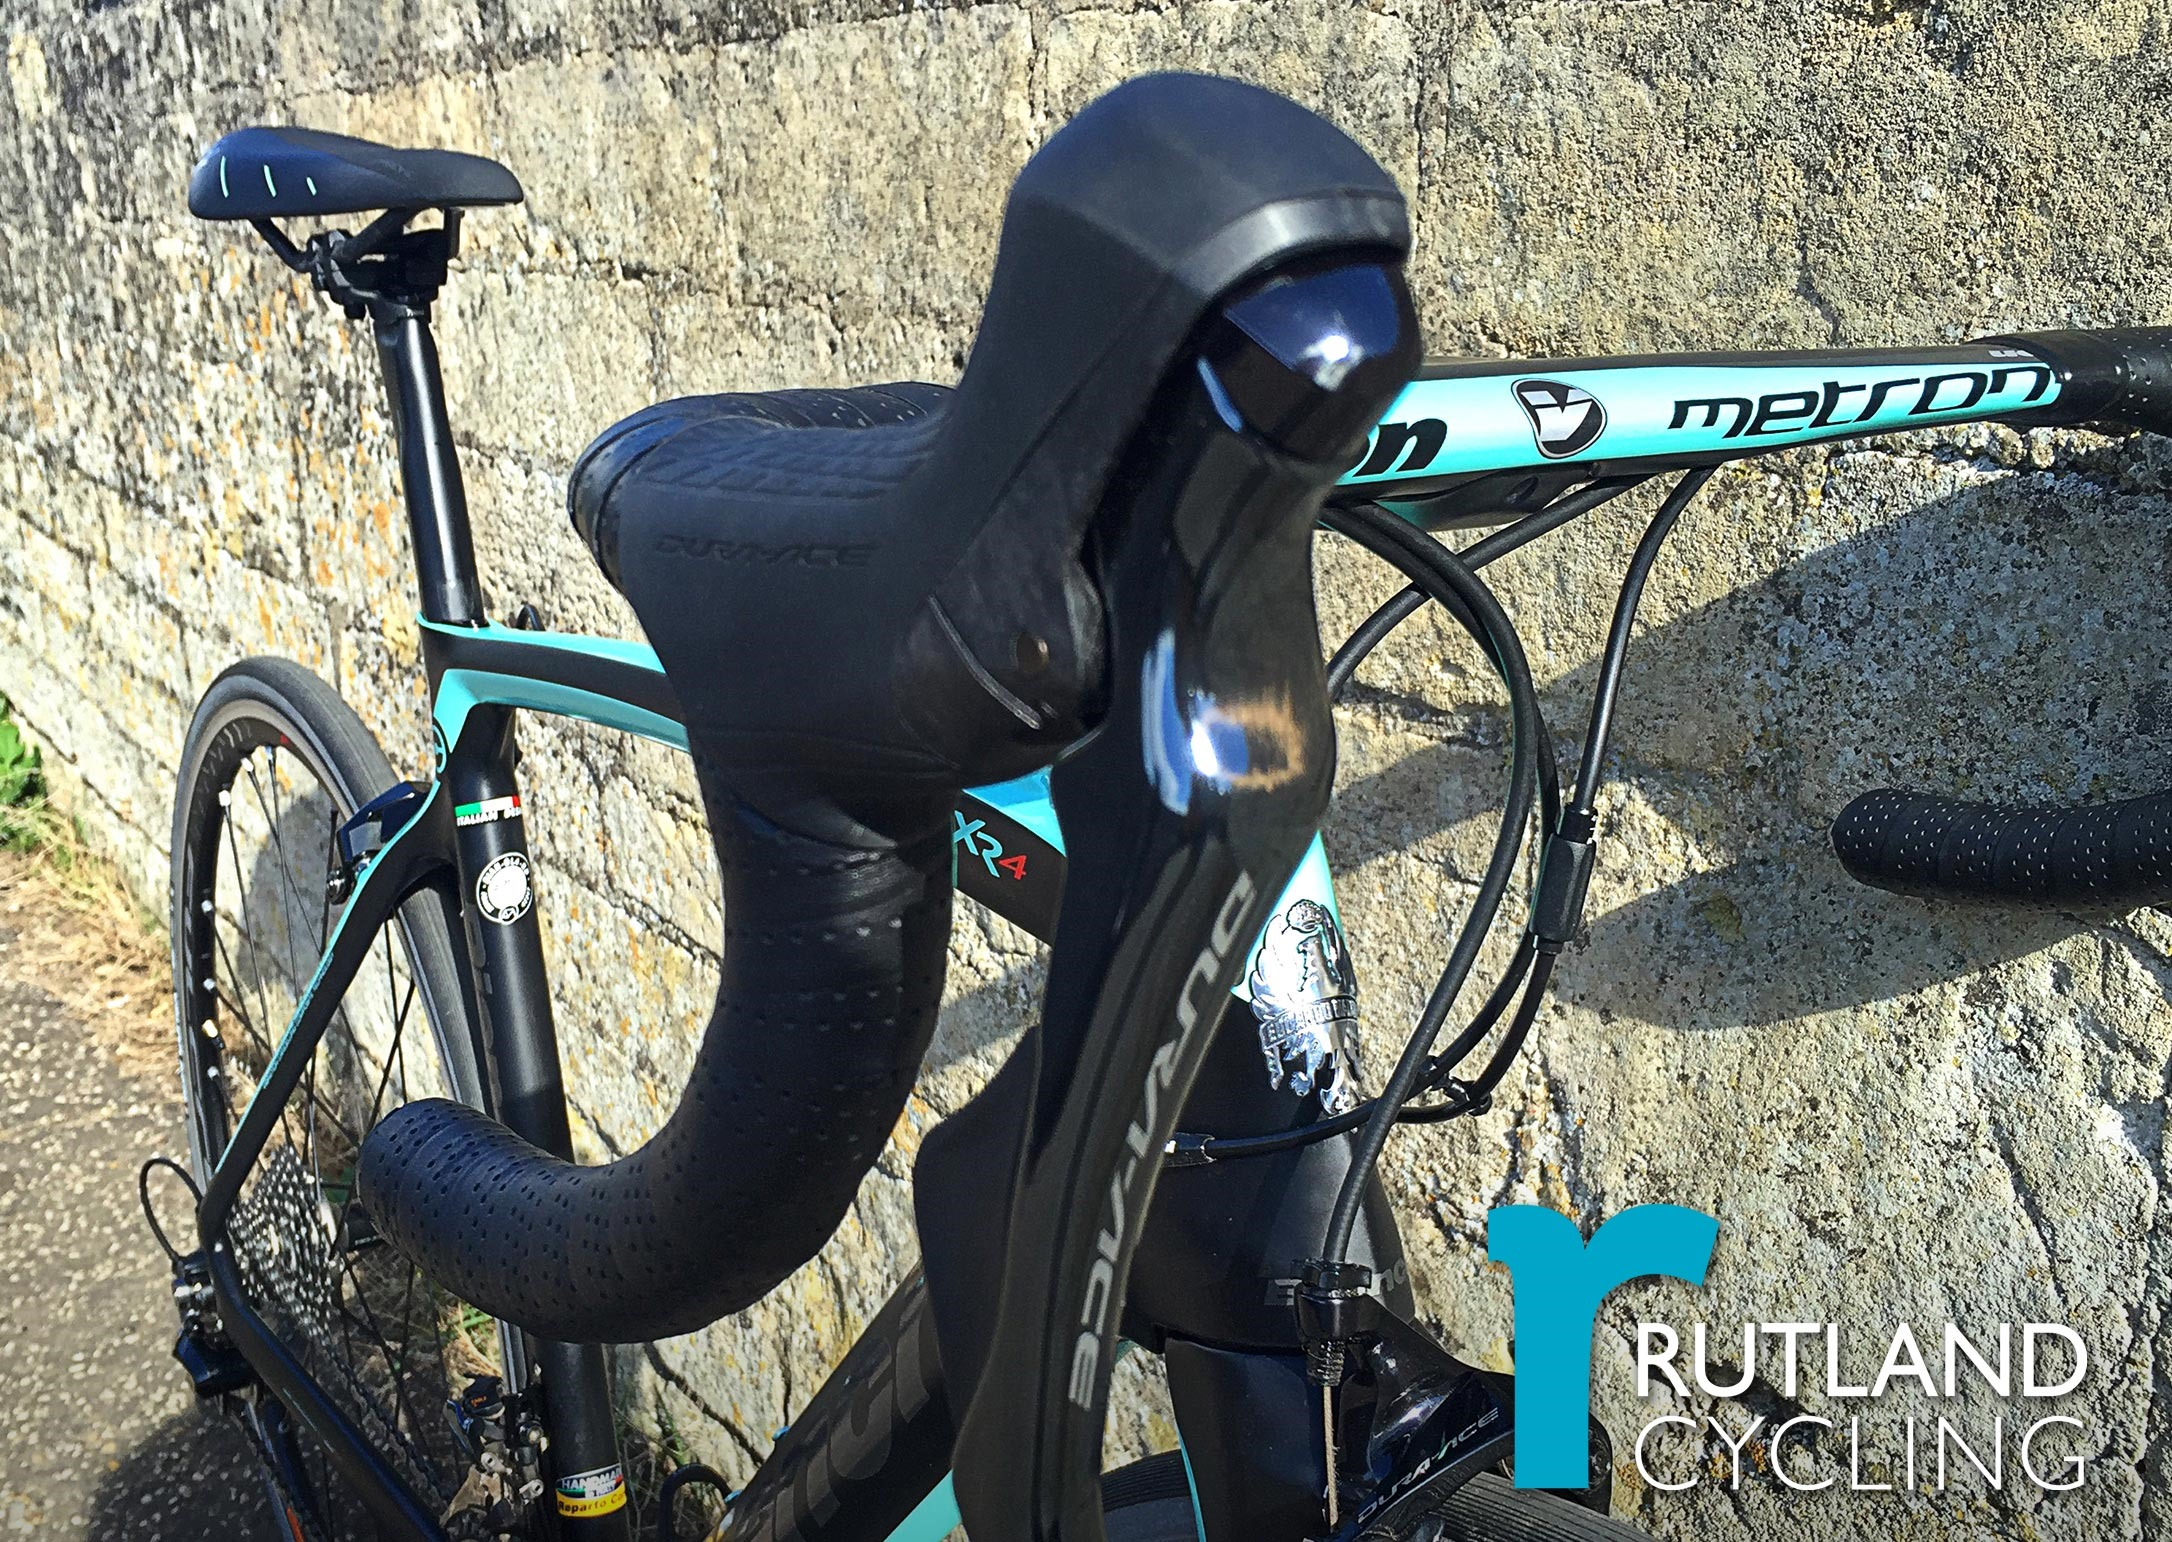 Bianchi Oltre XR4 Dura-Ace First Impressions Pic 5